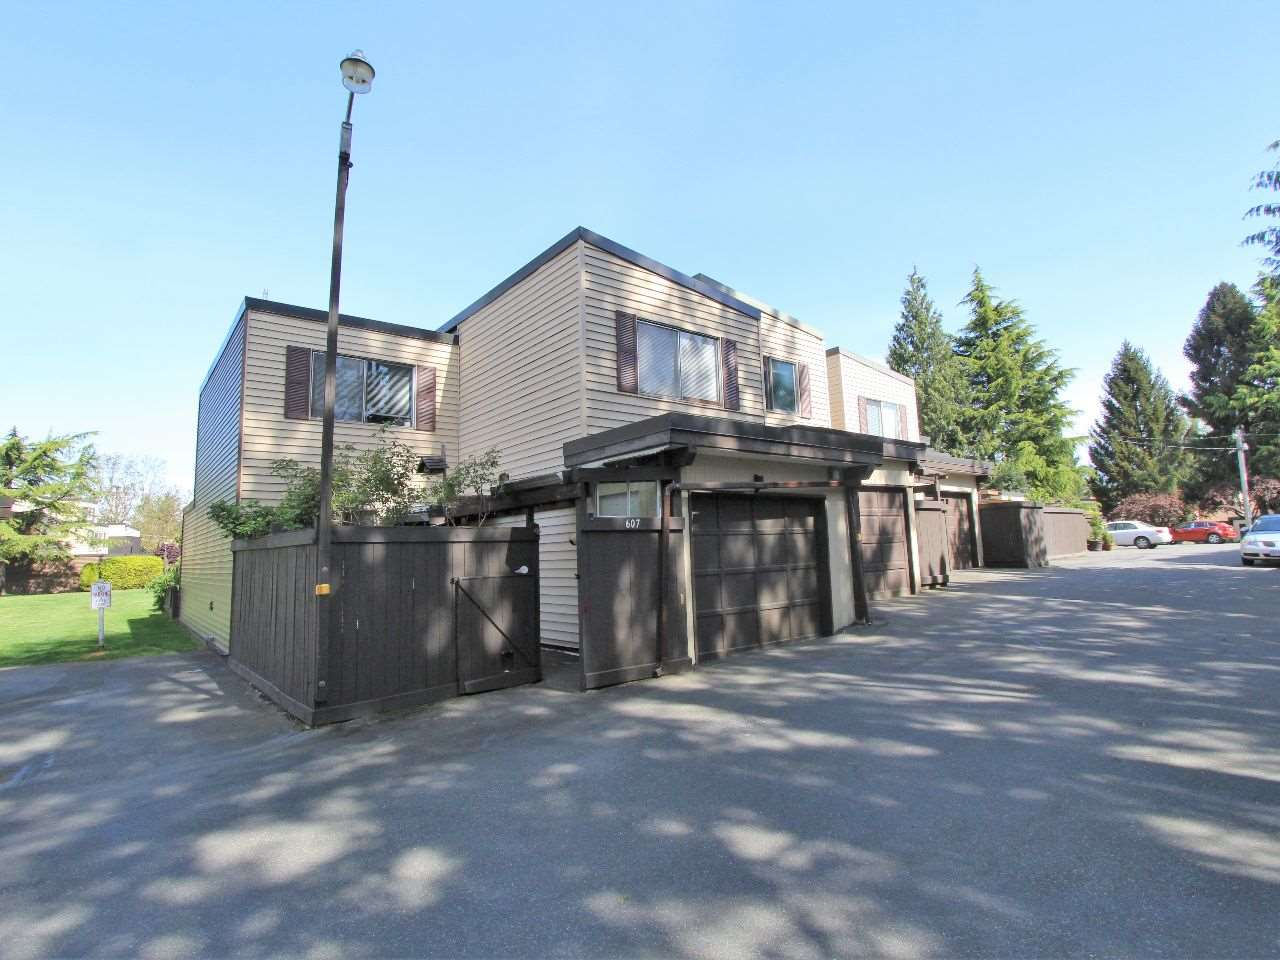 Photo 3: 606 2445 WARE Street in Abbotsford: Central Abbotsford Townhouse for sale : MLS® # R2059494